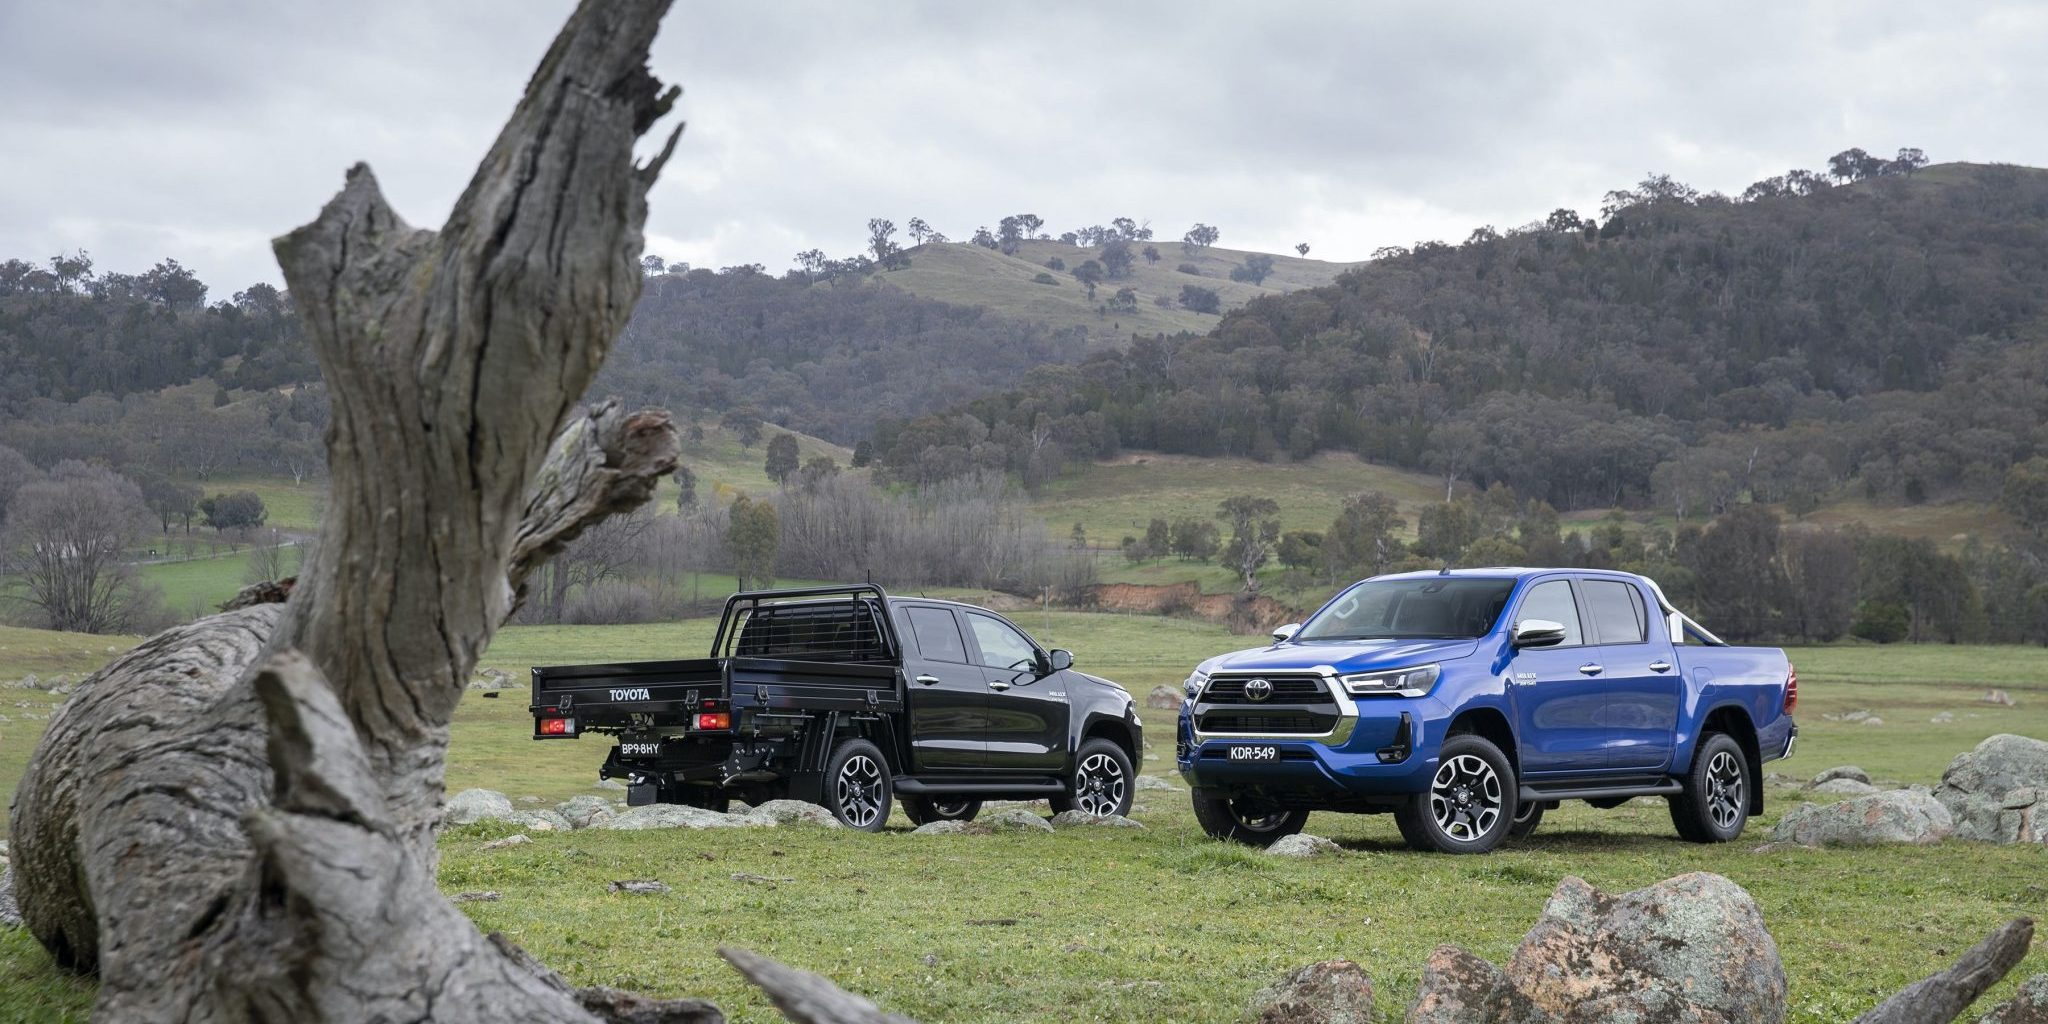 New 2020 Toyota HiLux revealed